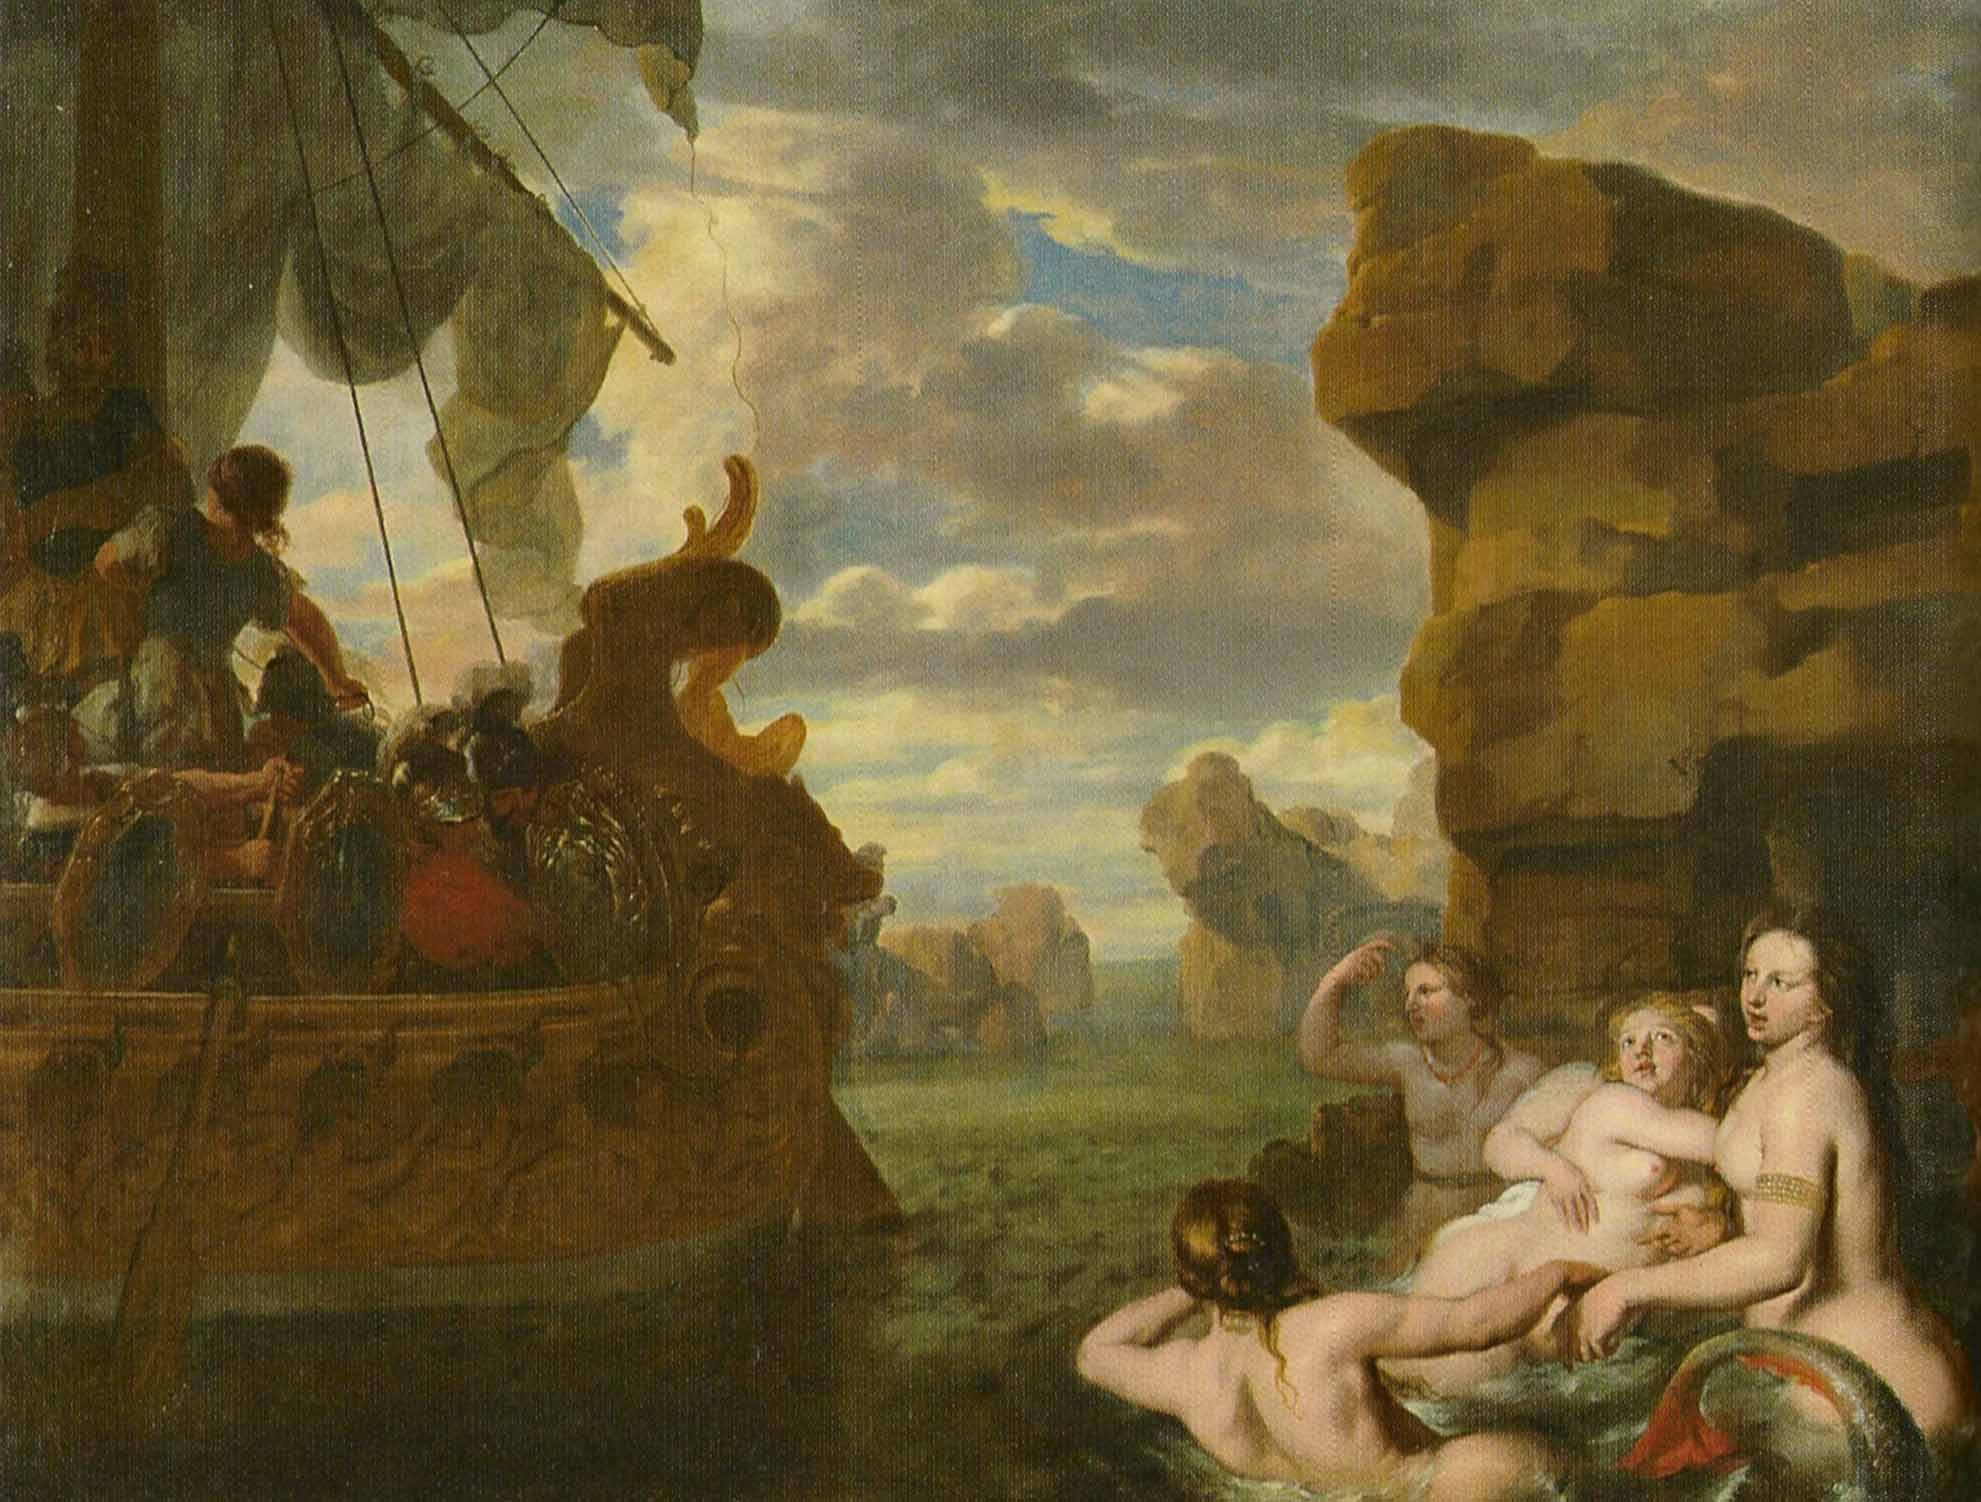 Pictures of sirens from the odyssey The Odyssey: A Deeper Appreciation